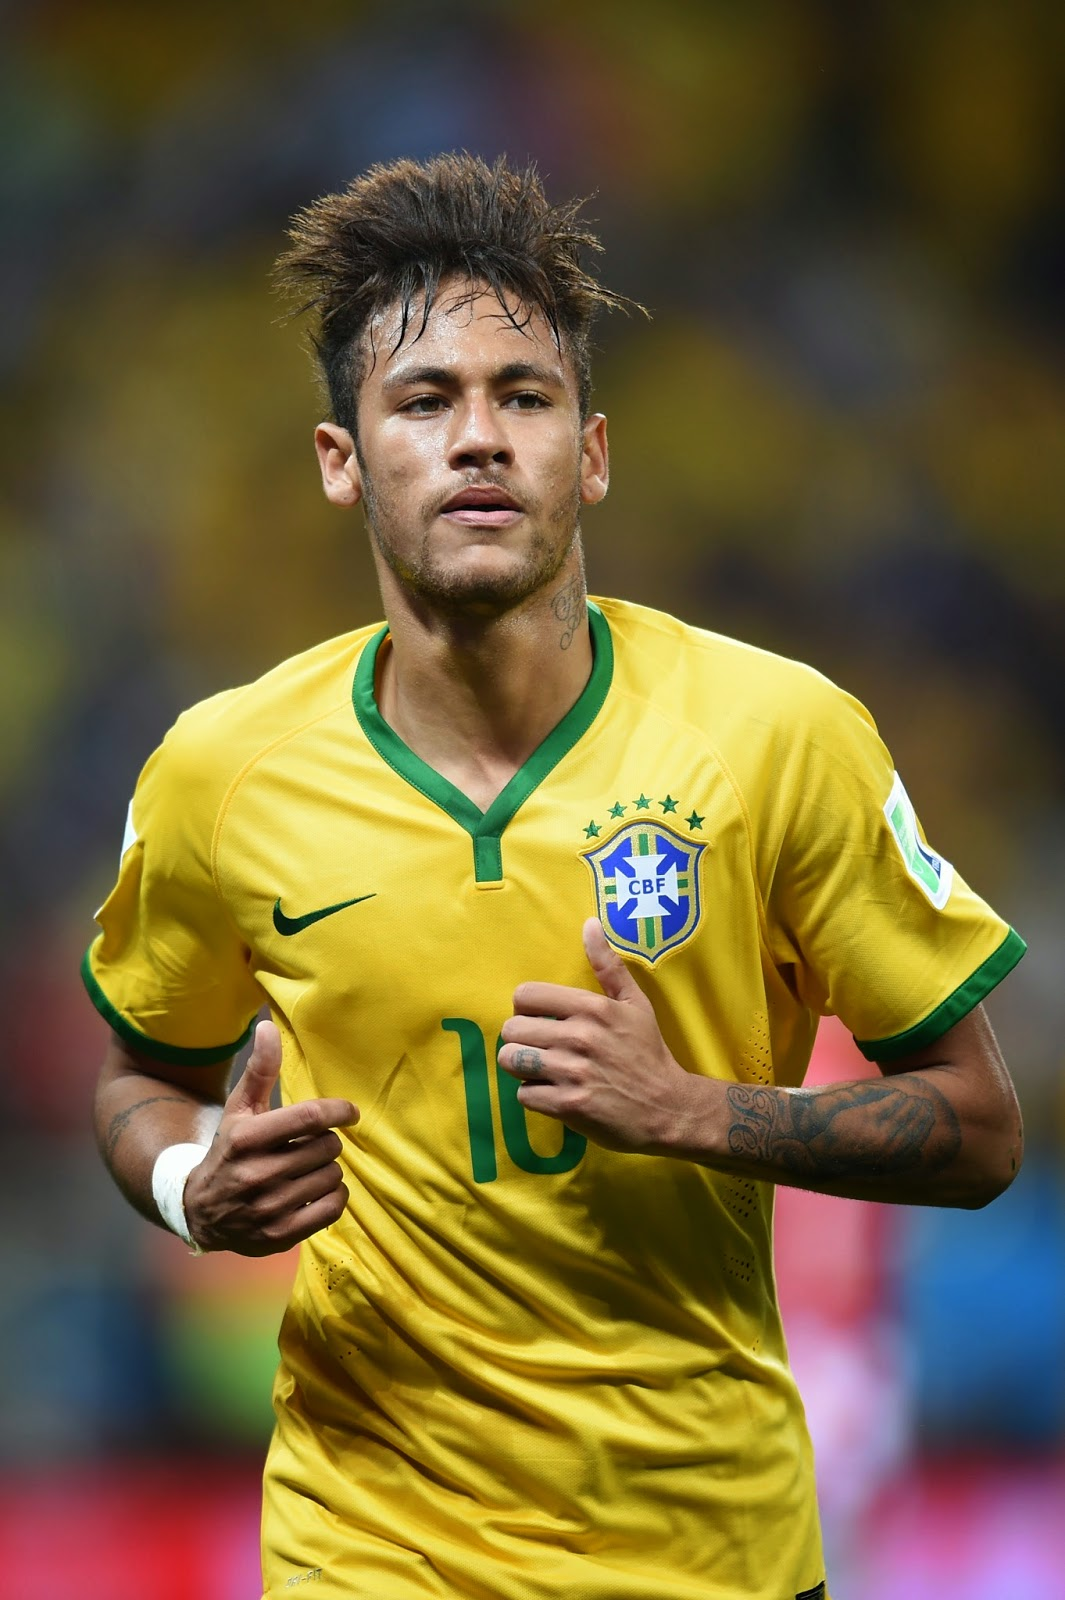 Brazil, Brazil vs Croatia, FIFA World Cup, FIFA World Cup 2014, First match, Football, Sports, Ivan Perisic, Stipe Pletikosa, Oscar, Neymar, David Luiz, Luiz Felipe Scolari, Group A,